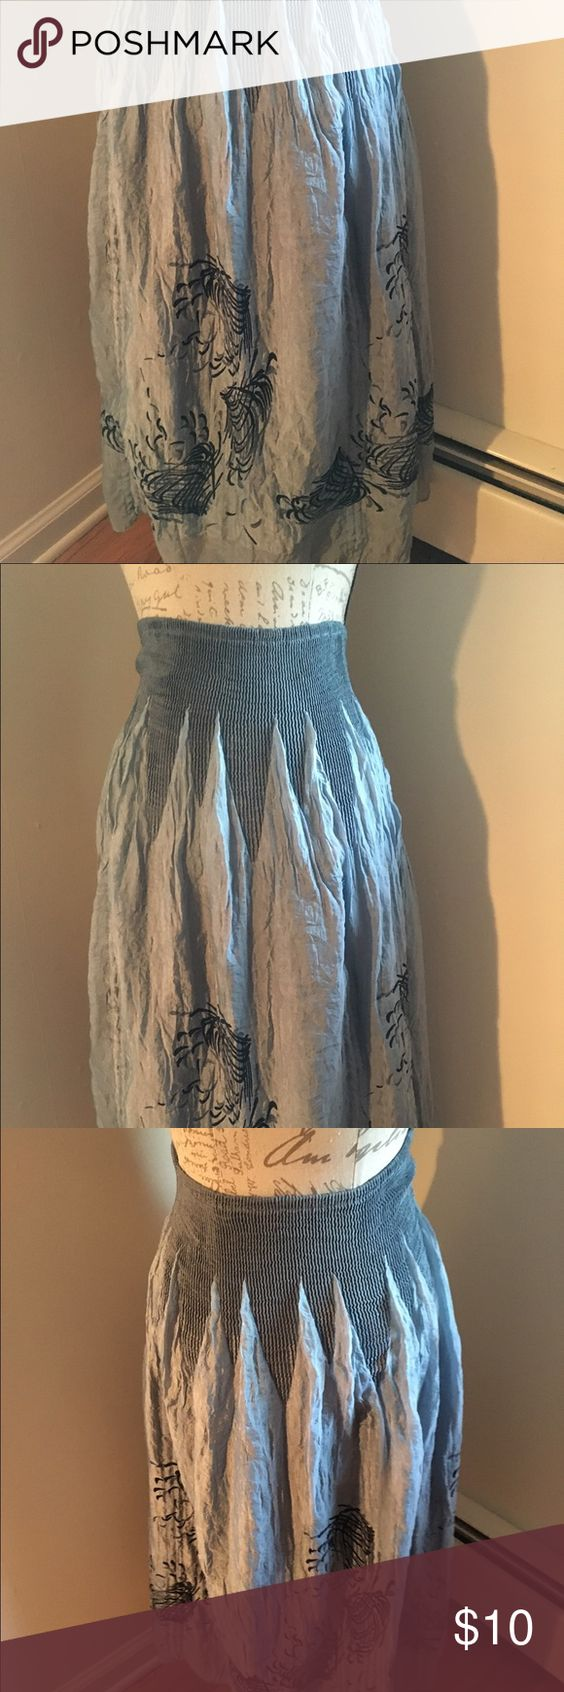 Beautiful comfortable skirt One size fits all - stretchy material - beautiful design Lapis Skirts